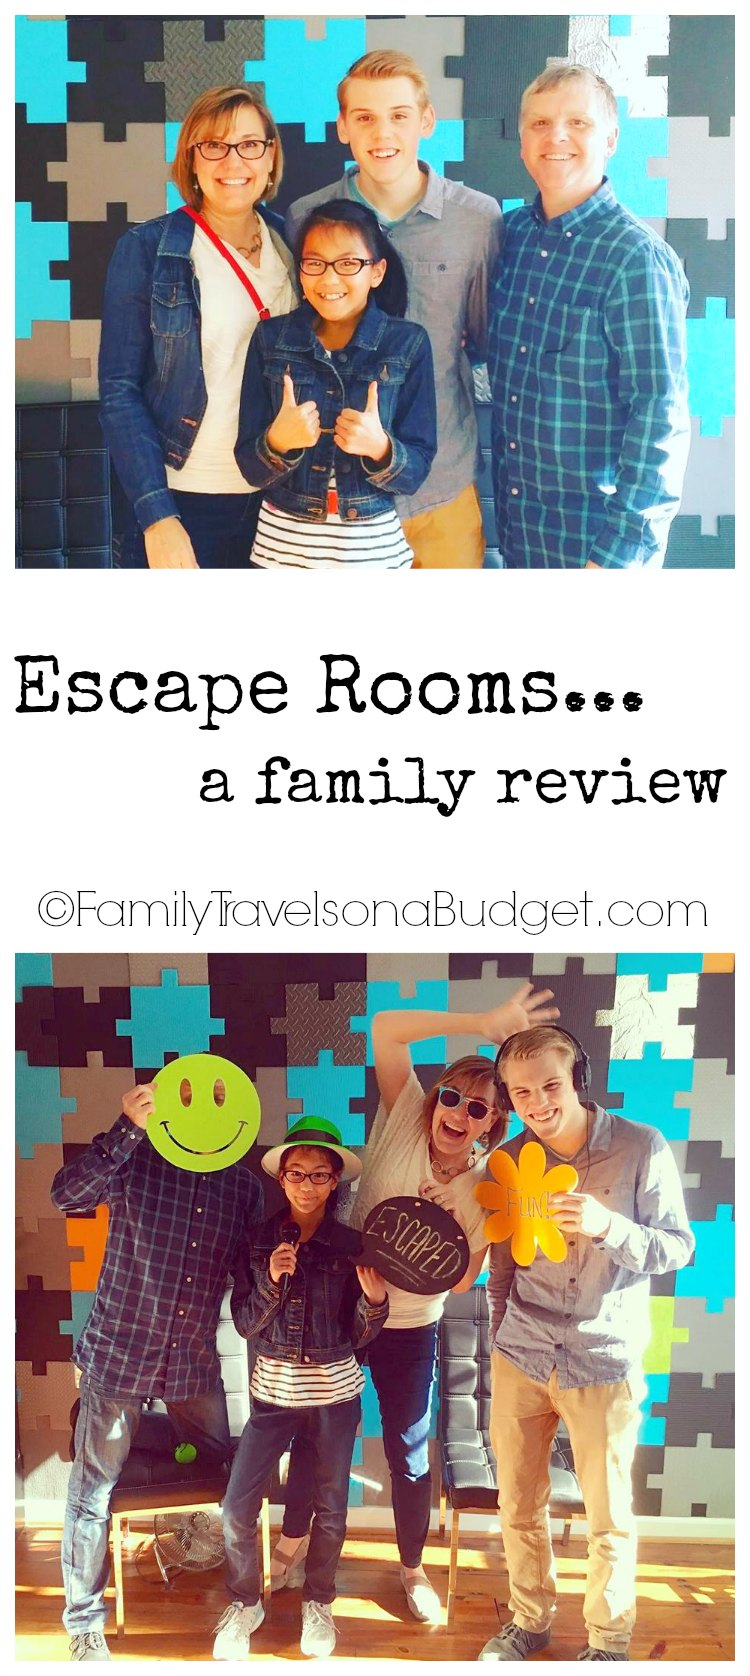 Tic Toc Escape Rooms